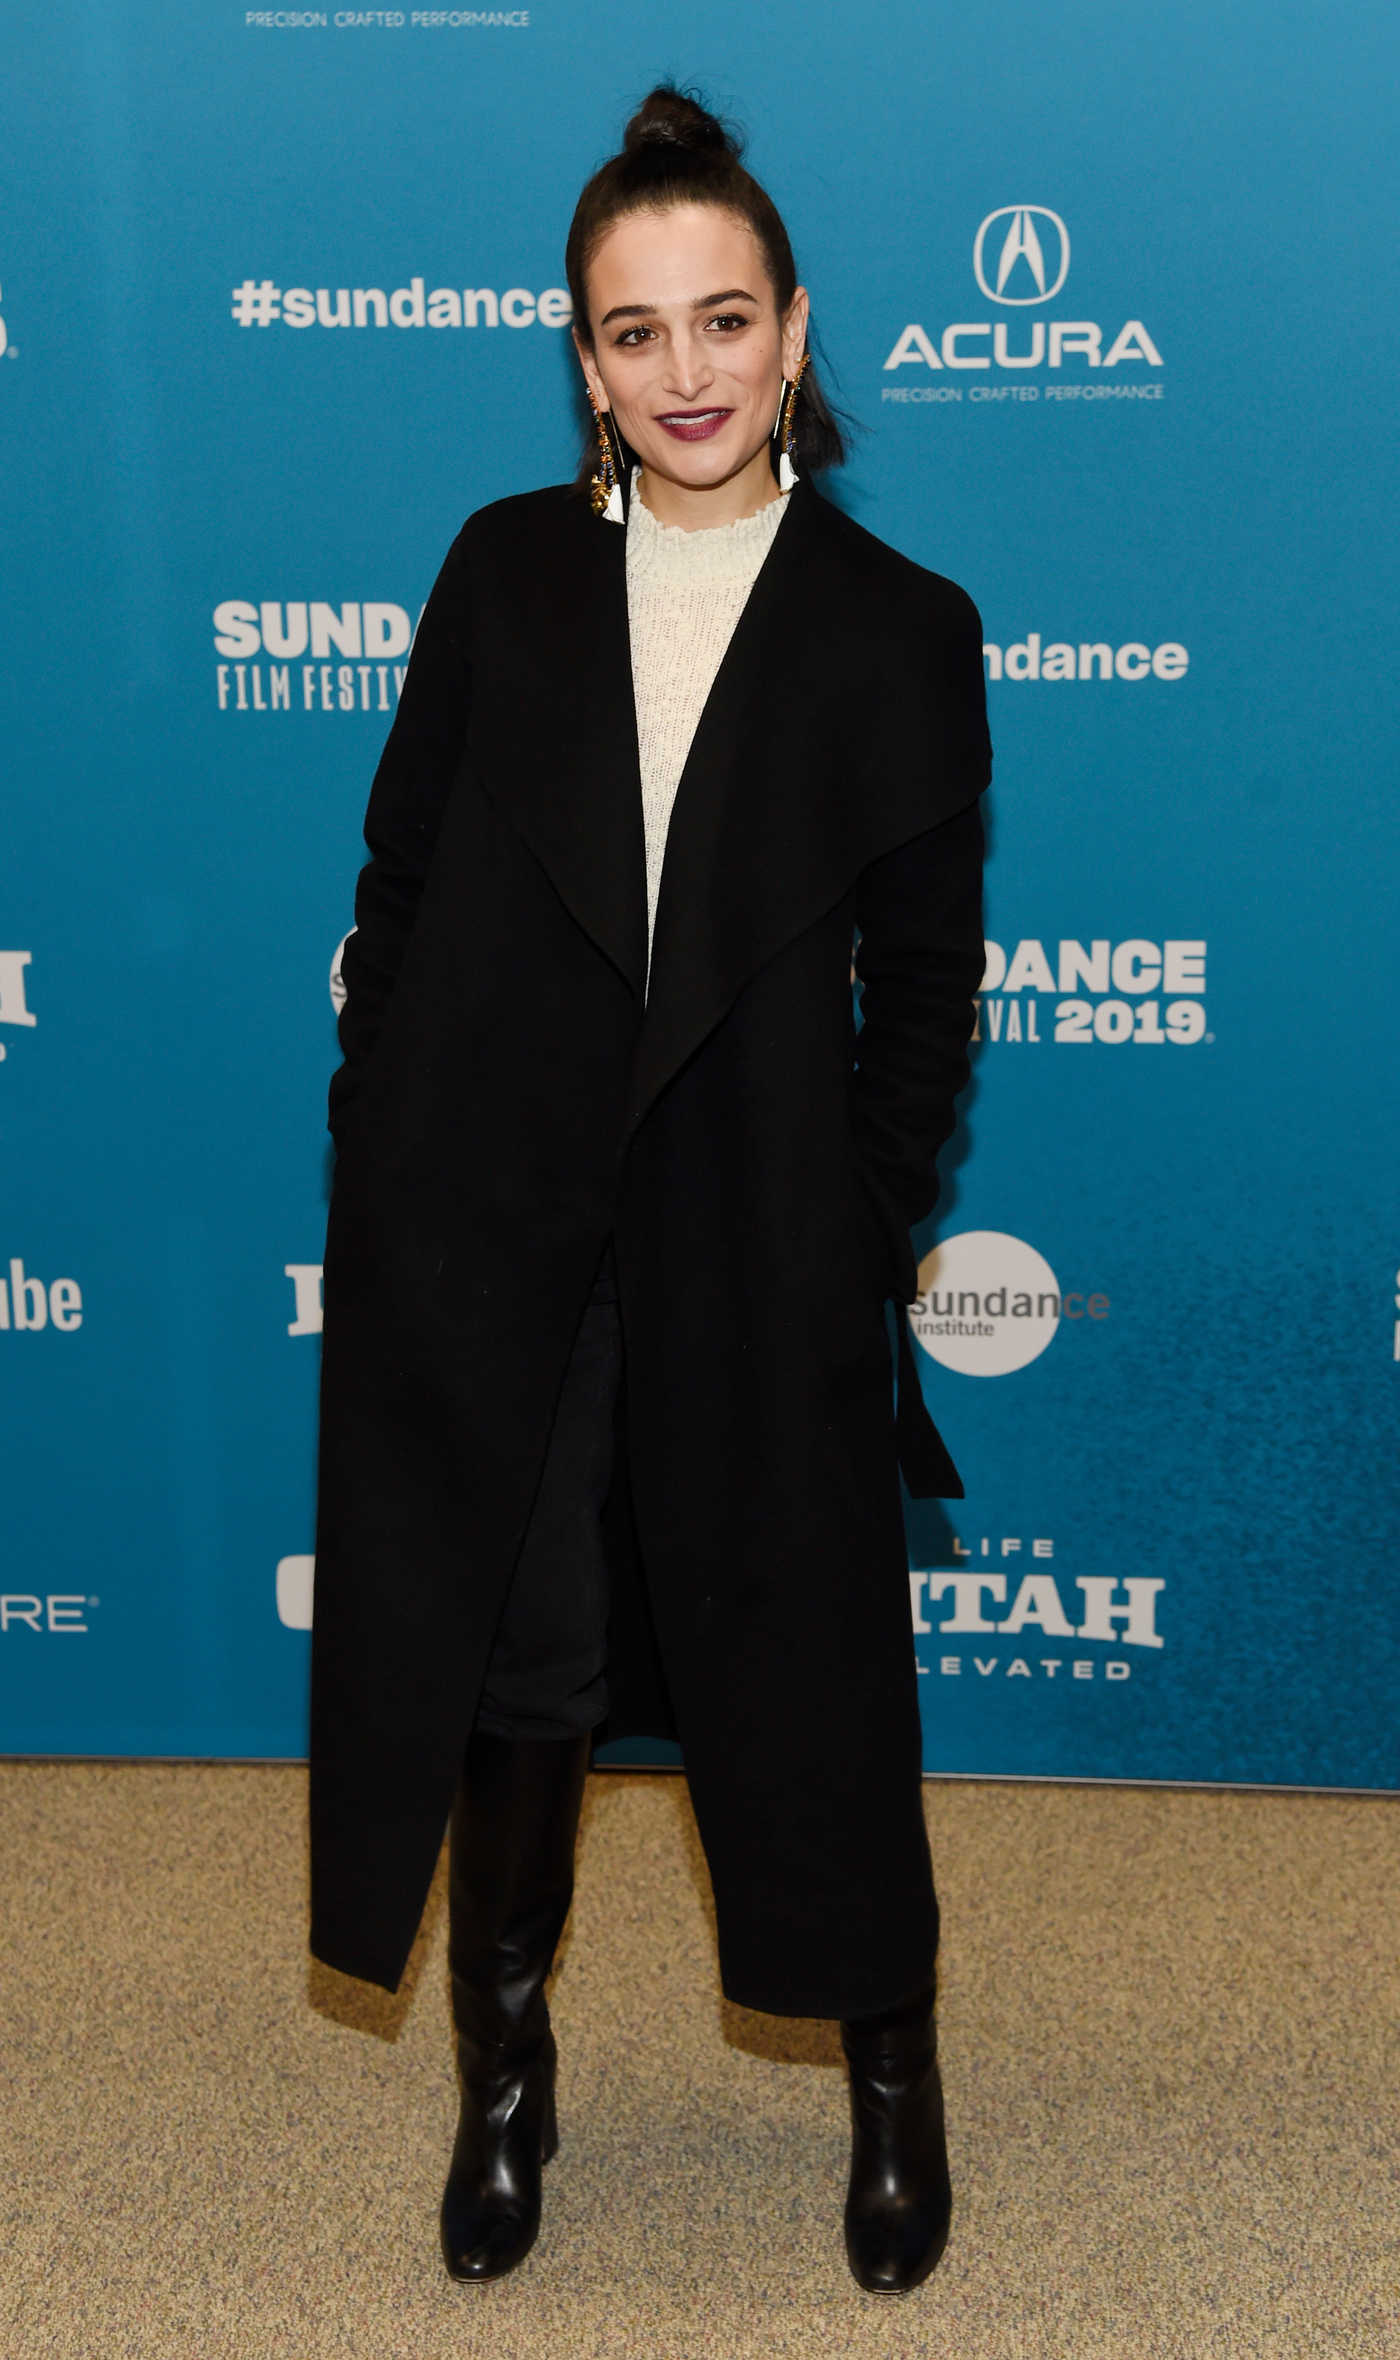 Jenny Slate Attends The Sunlit Night Premiere During Sundance Film Festival in Park City 01/26/2019